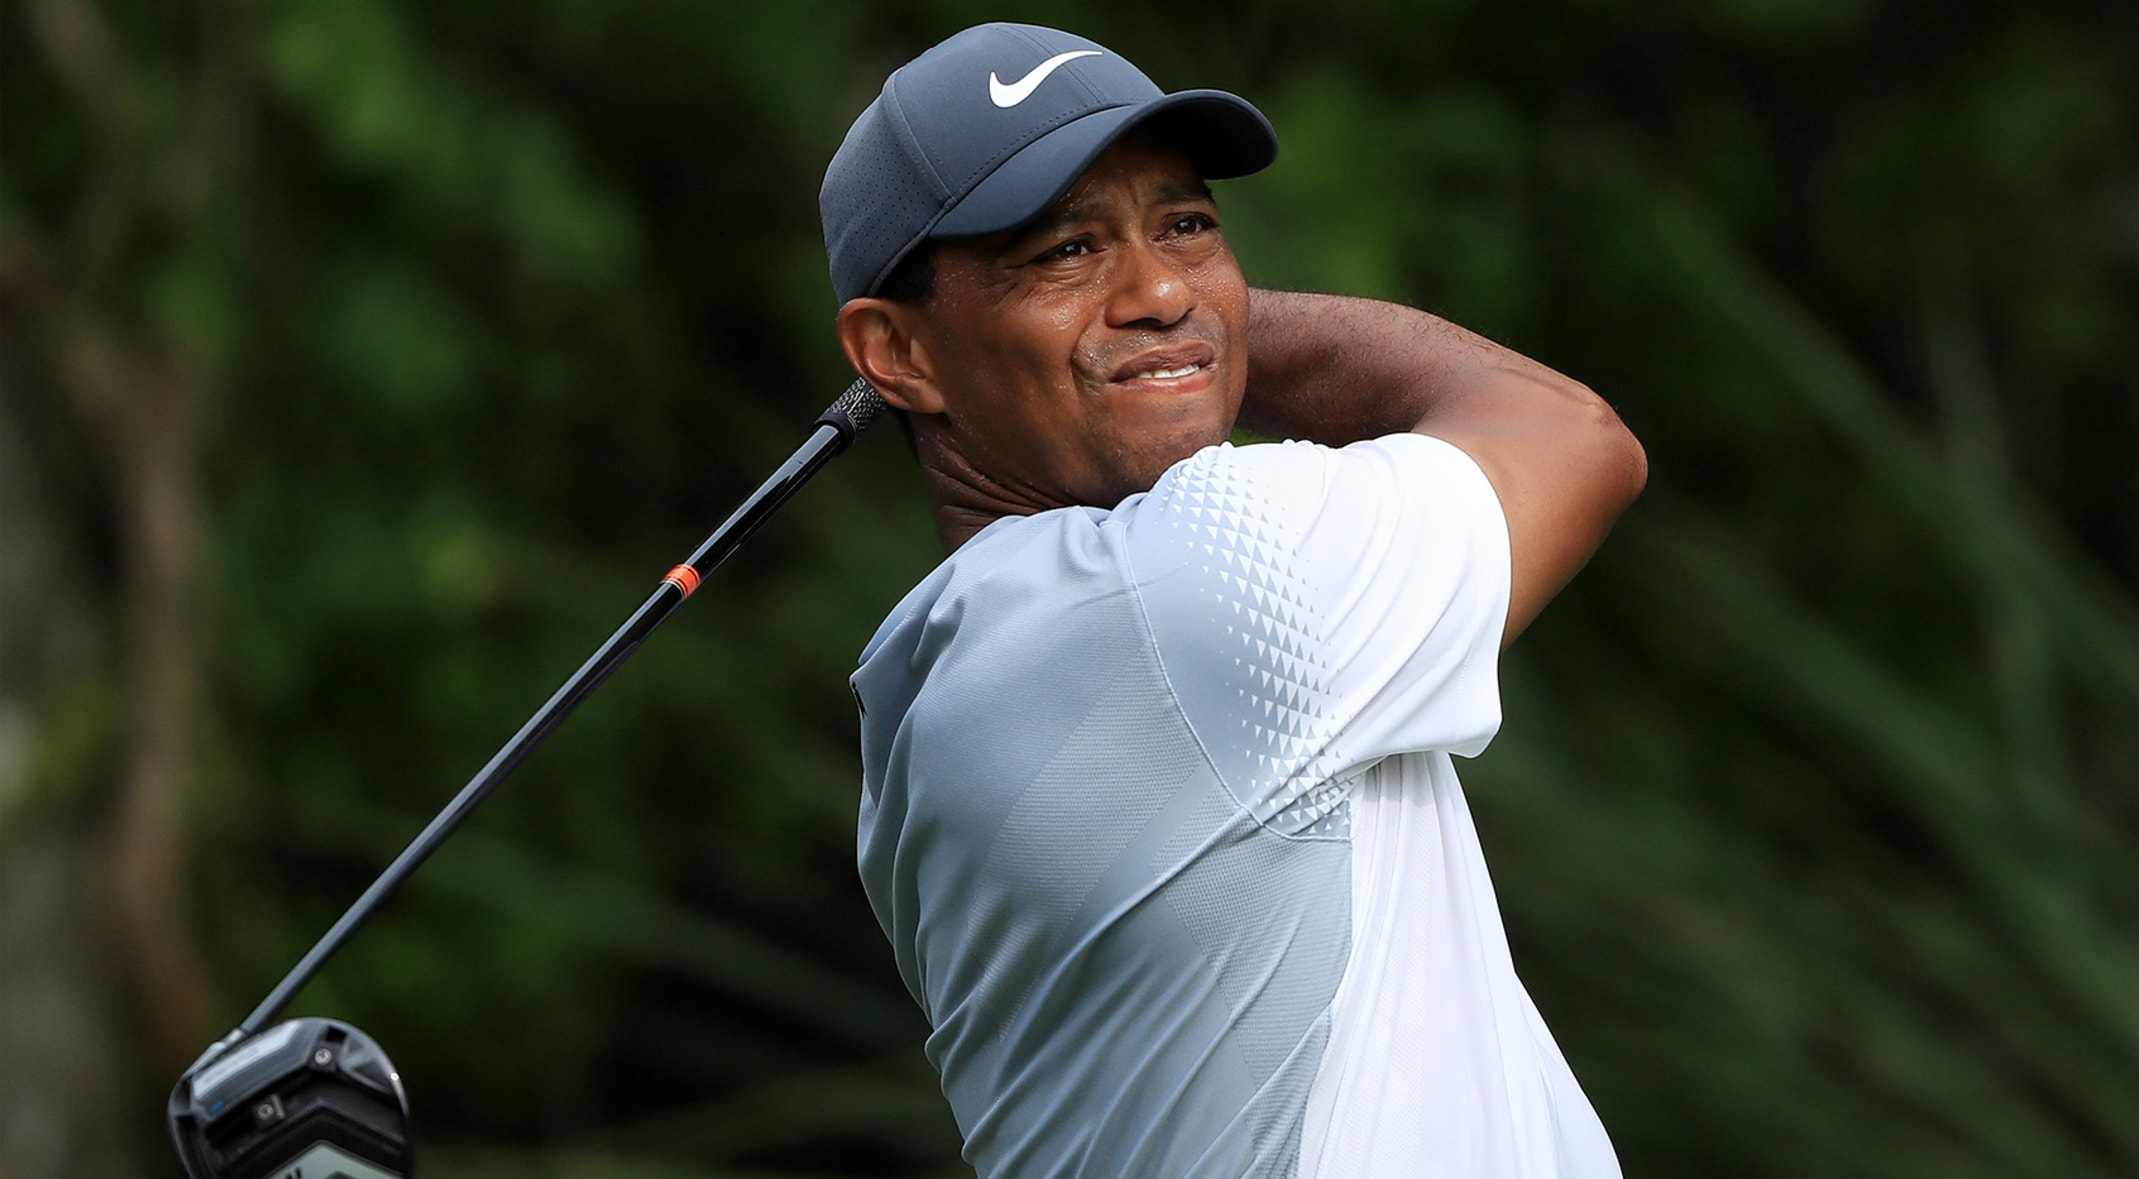 golf leaderboard pga today tiger woods